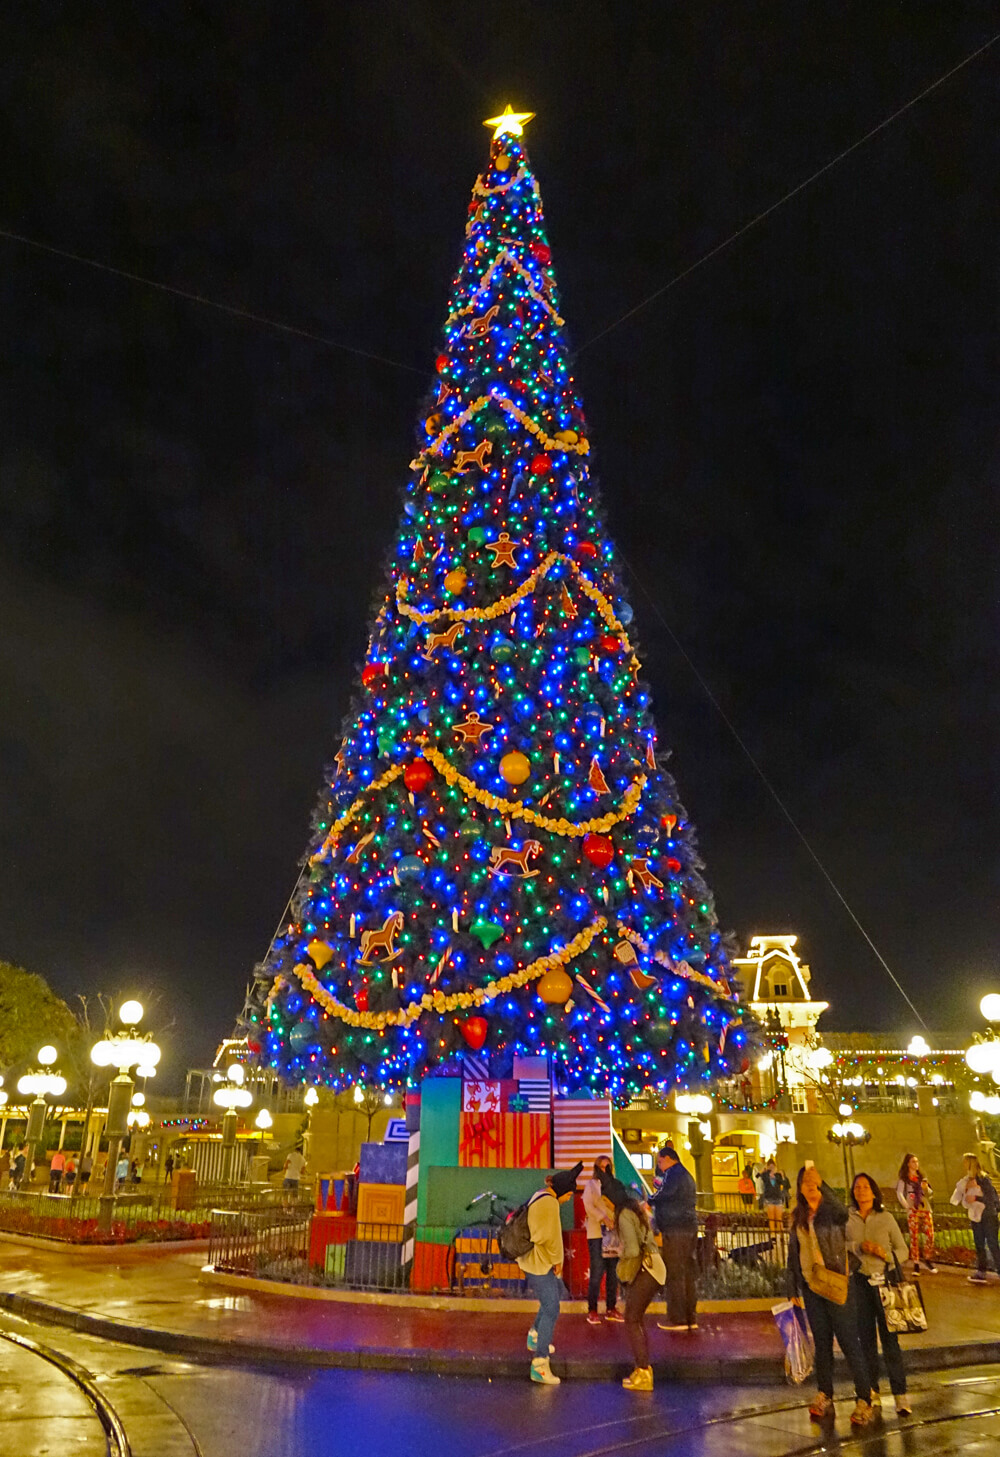 disney world holiday events 2018 magic kingdom tree - Holiday Time Christmas Decorations